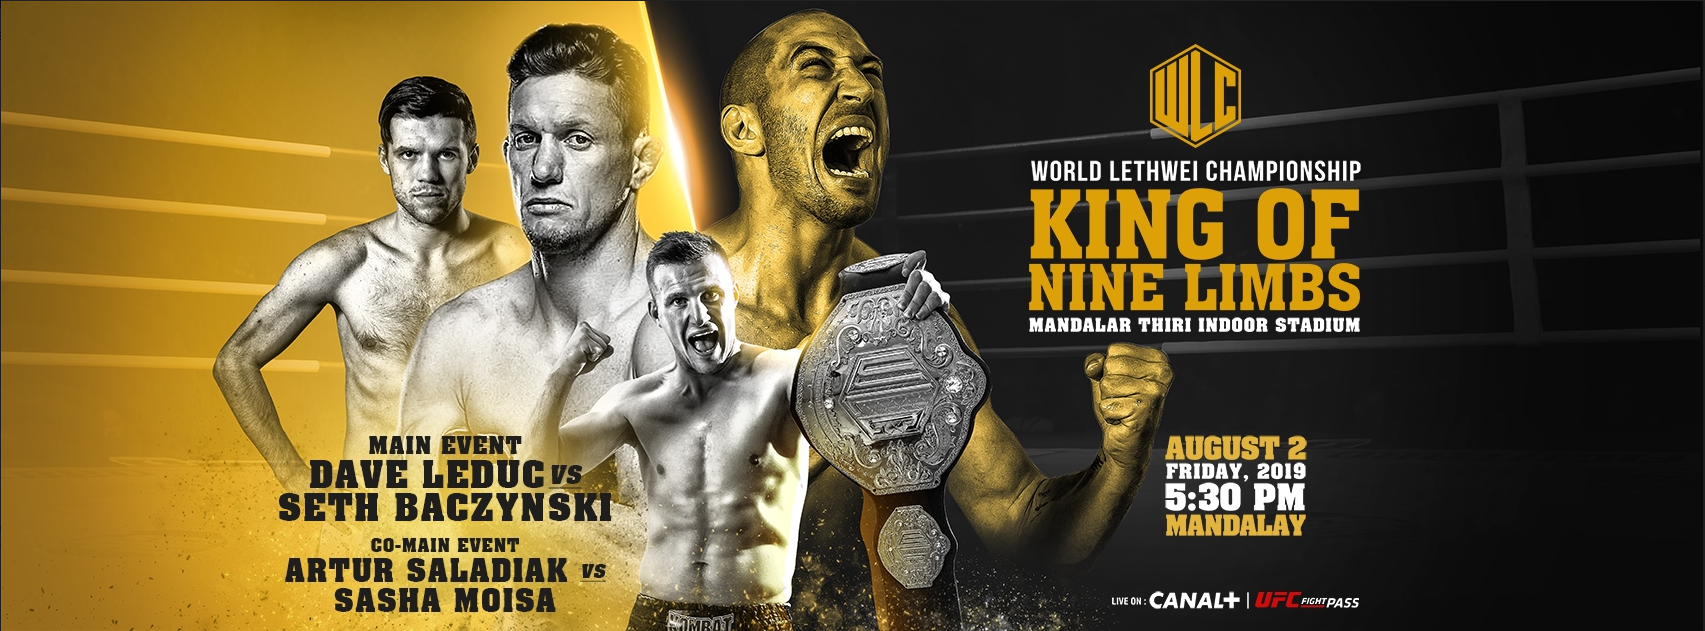 King of Nine Limbs comes to UFC Fight Pass this Friday -